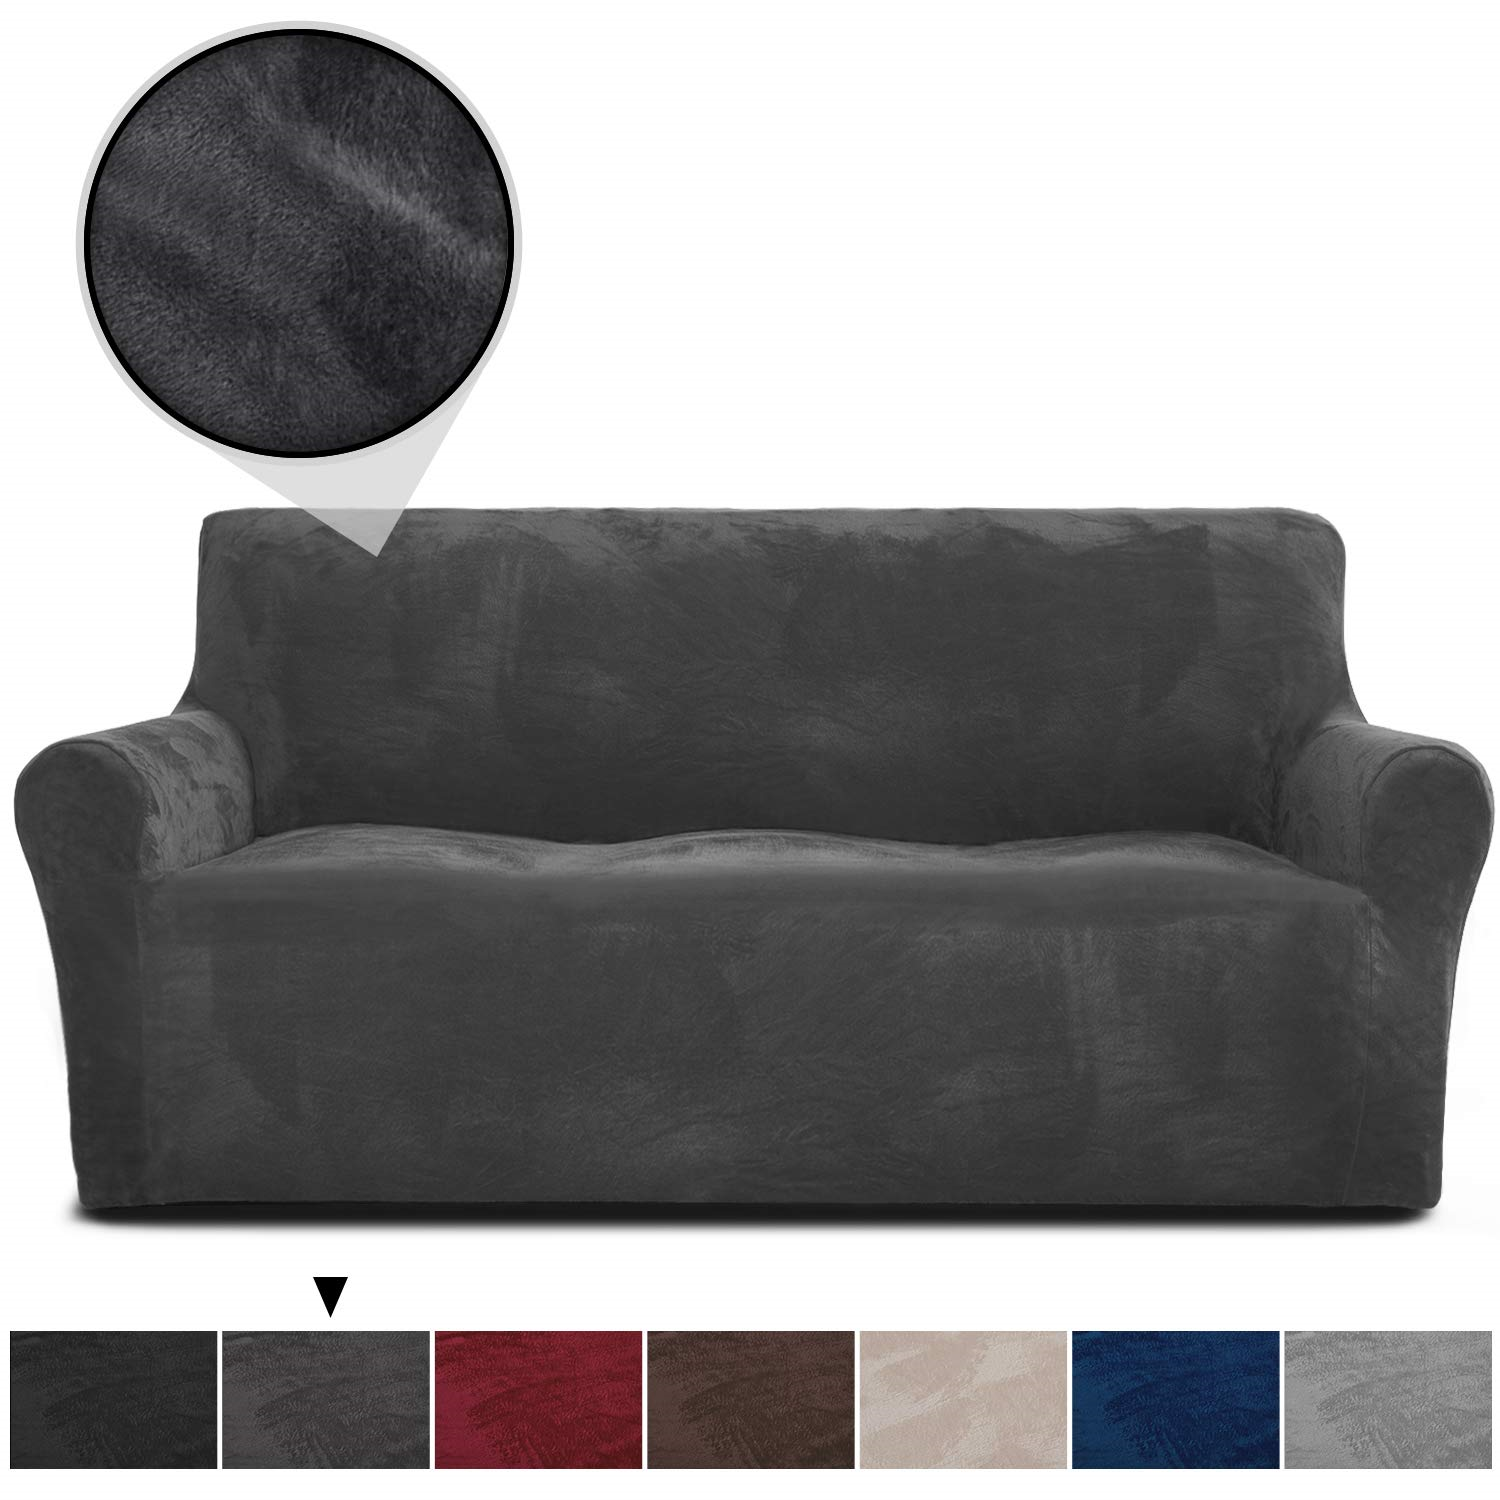 Rhf Velvet Sofa Slipcover Stretch Couch Covers For 3 Cushion Couch